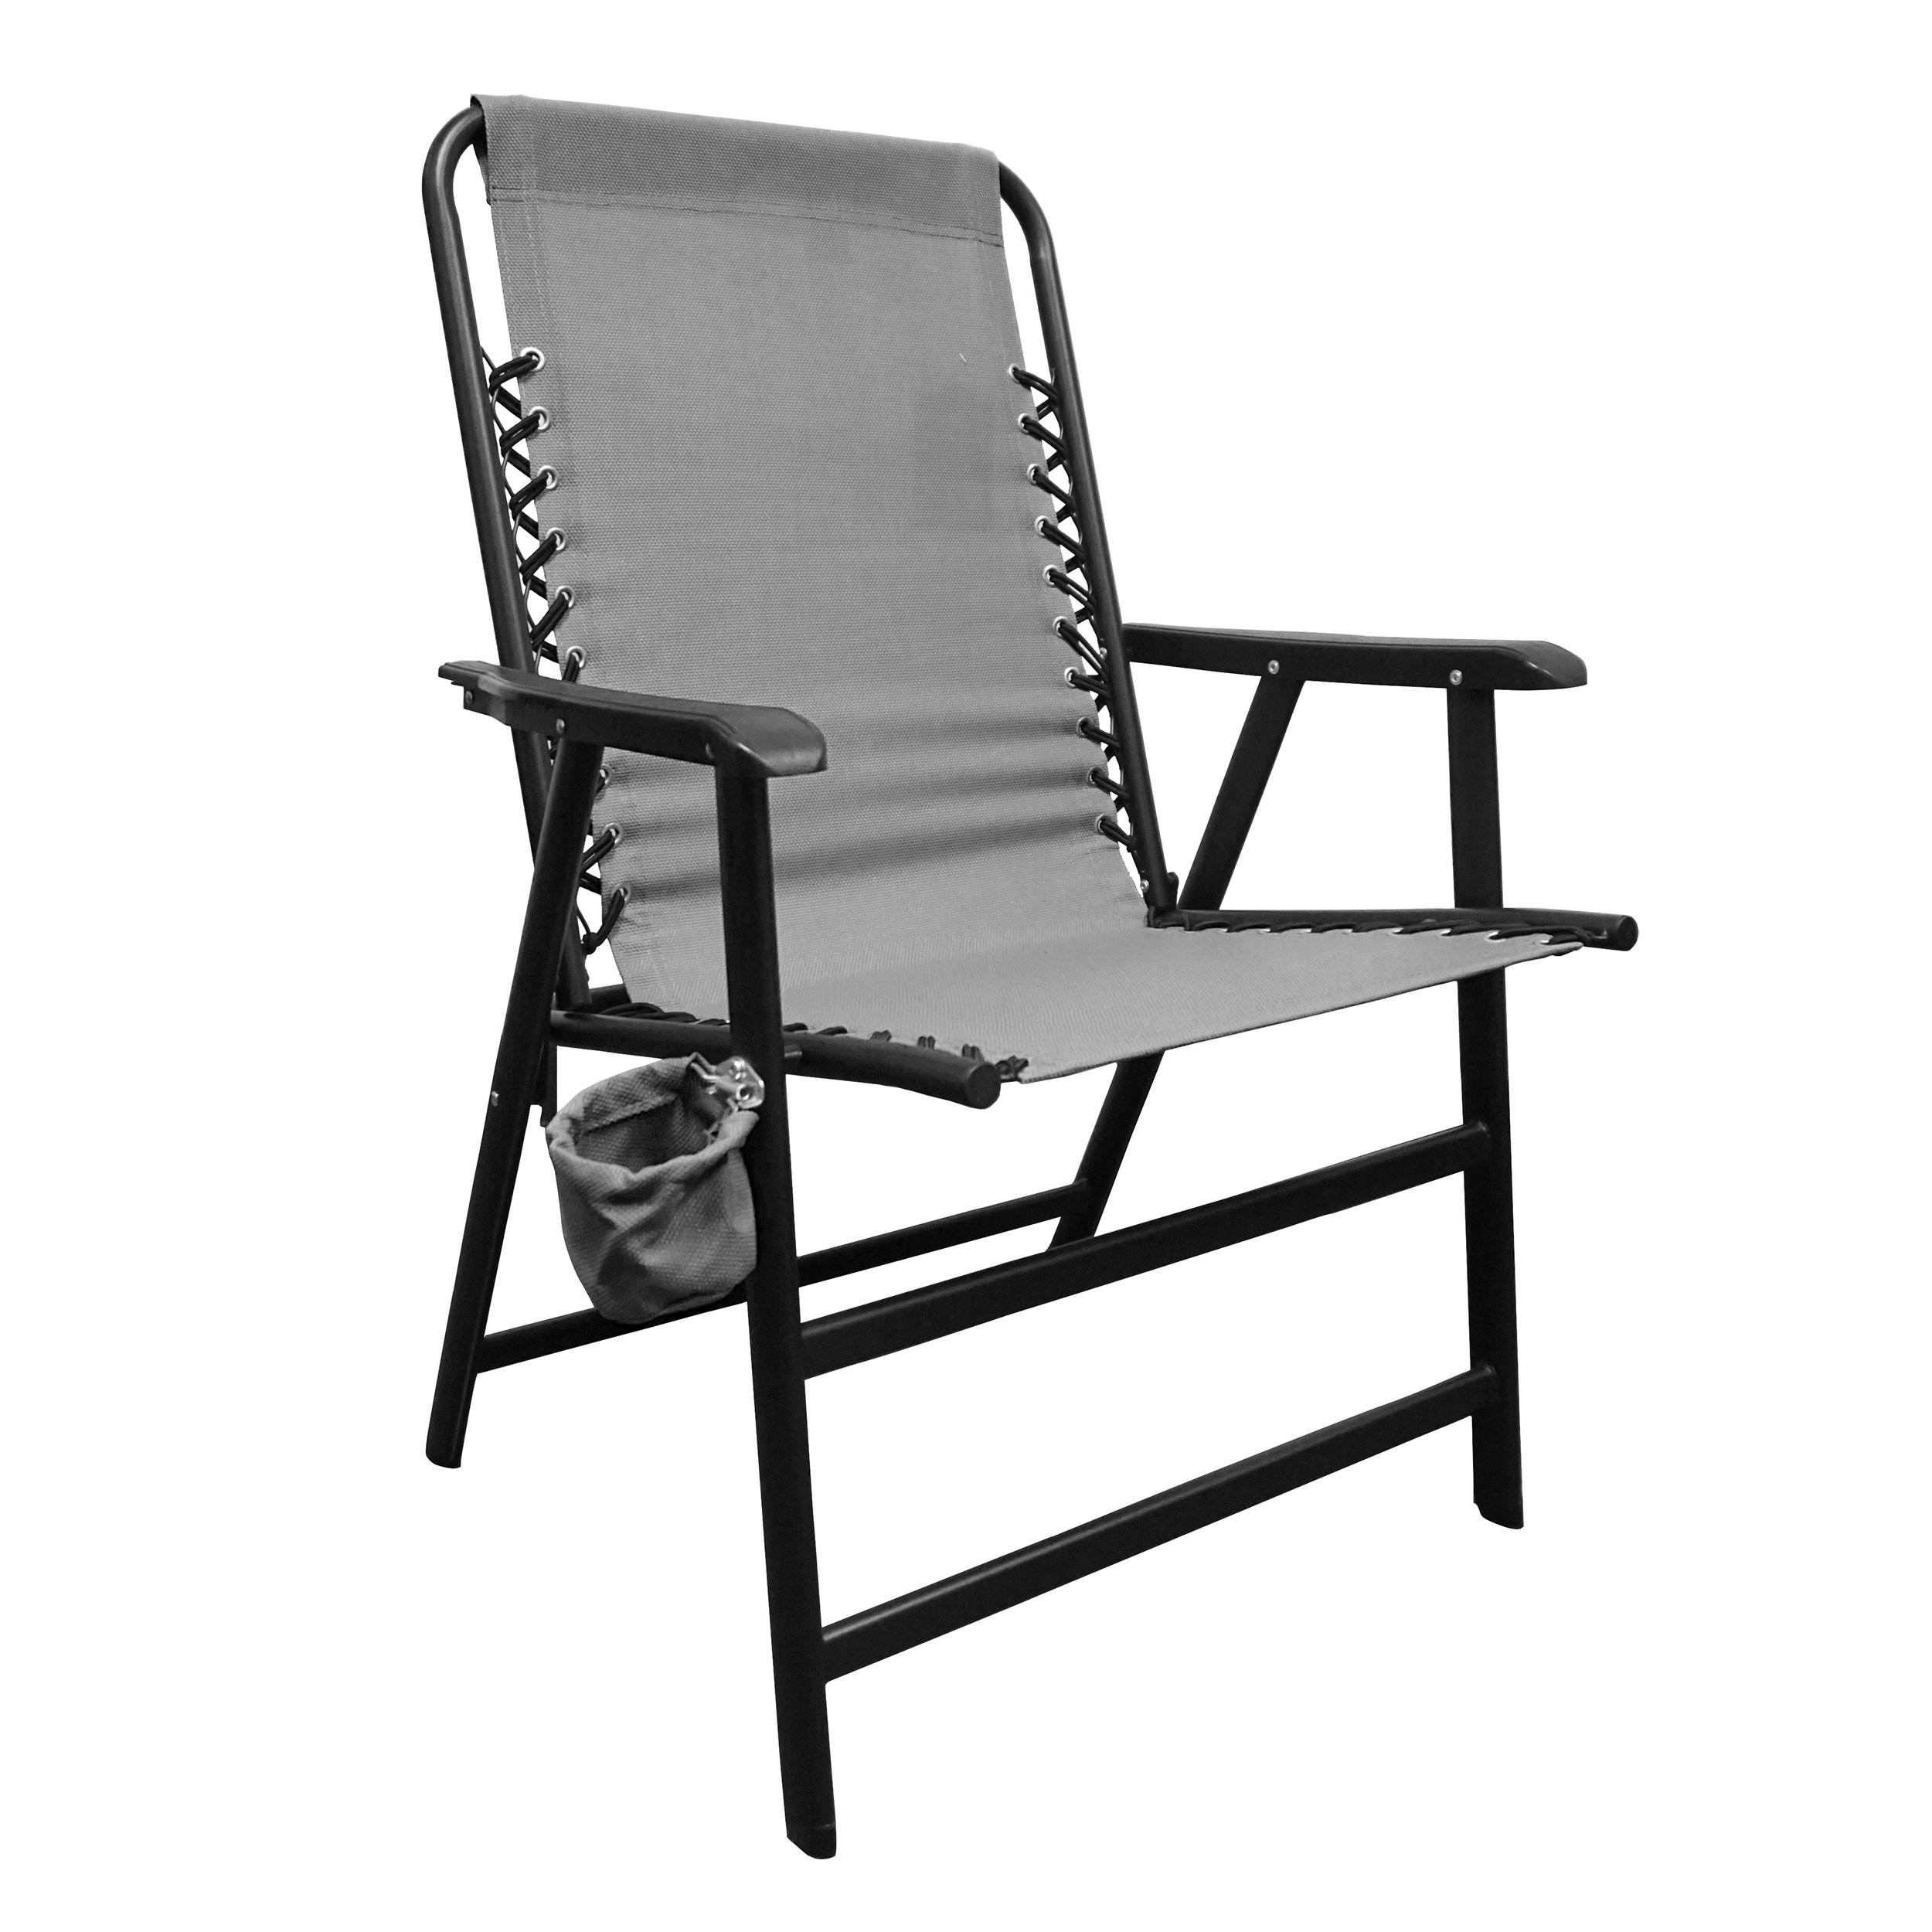 Caravan Canopy Sports Suspension Chair, Grey, X-Large